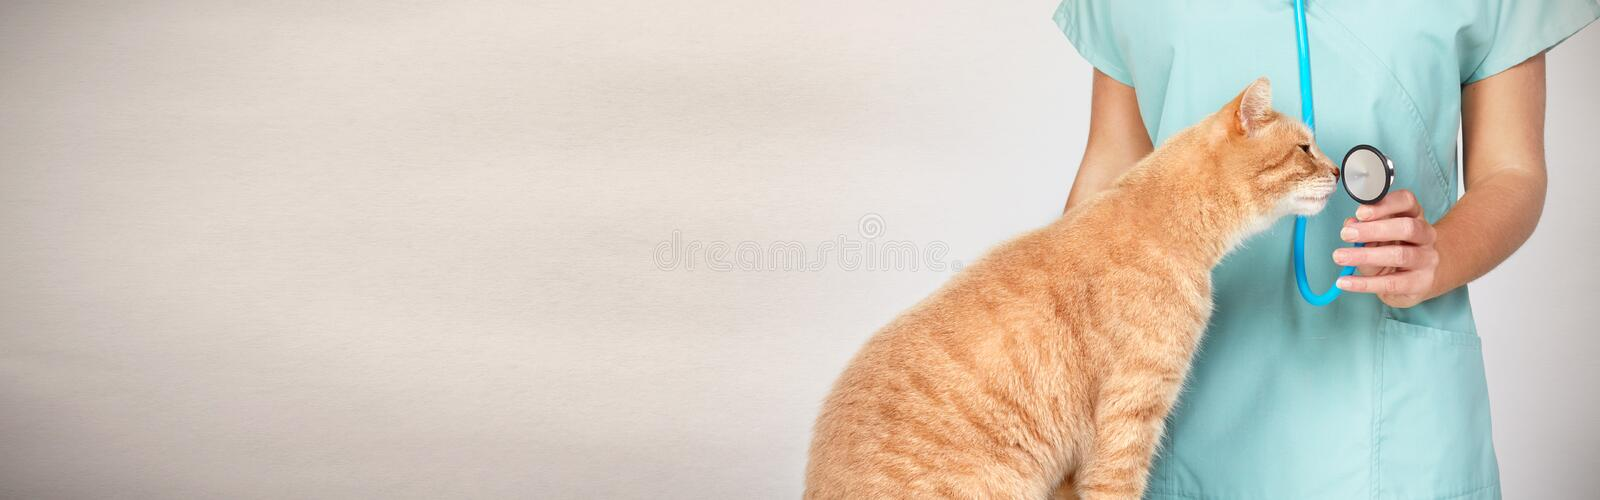 Veterinarian doctor with cat in veterinary clinic. stock image